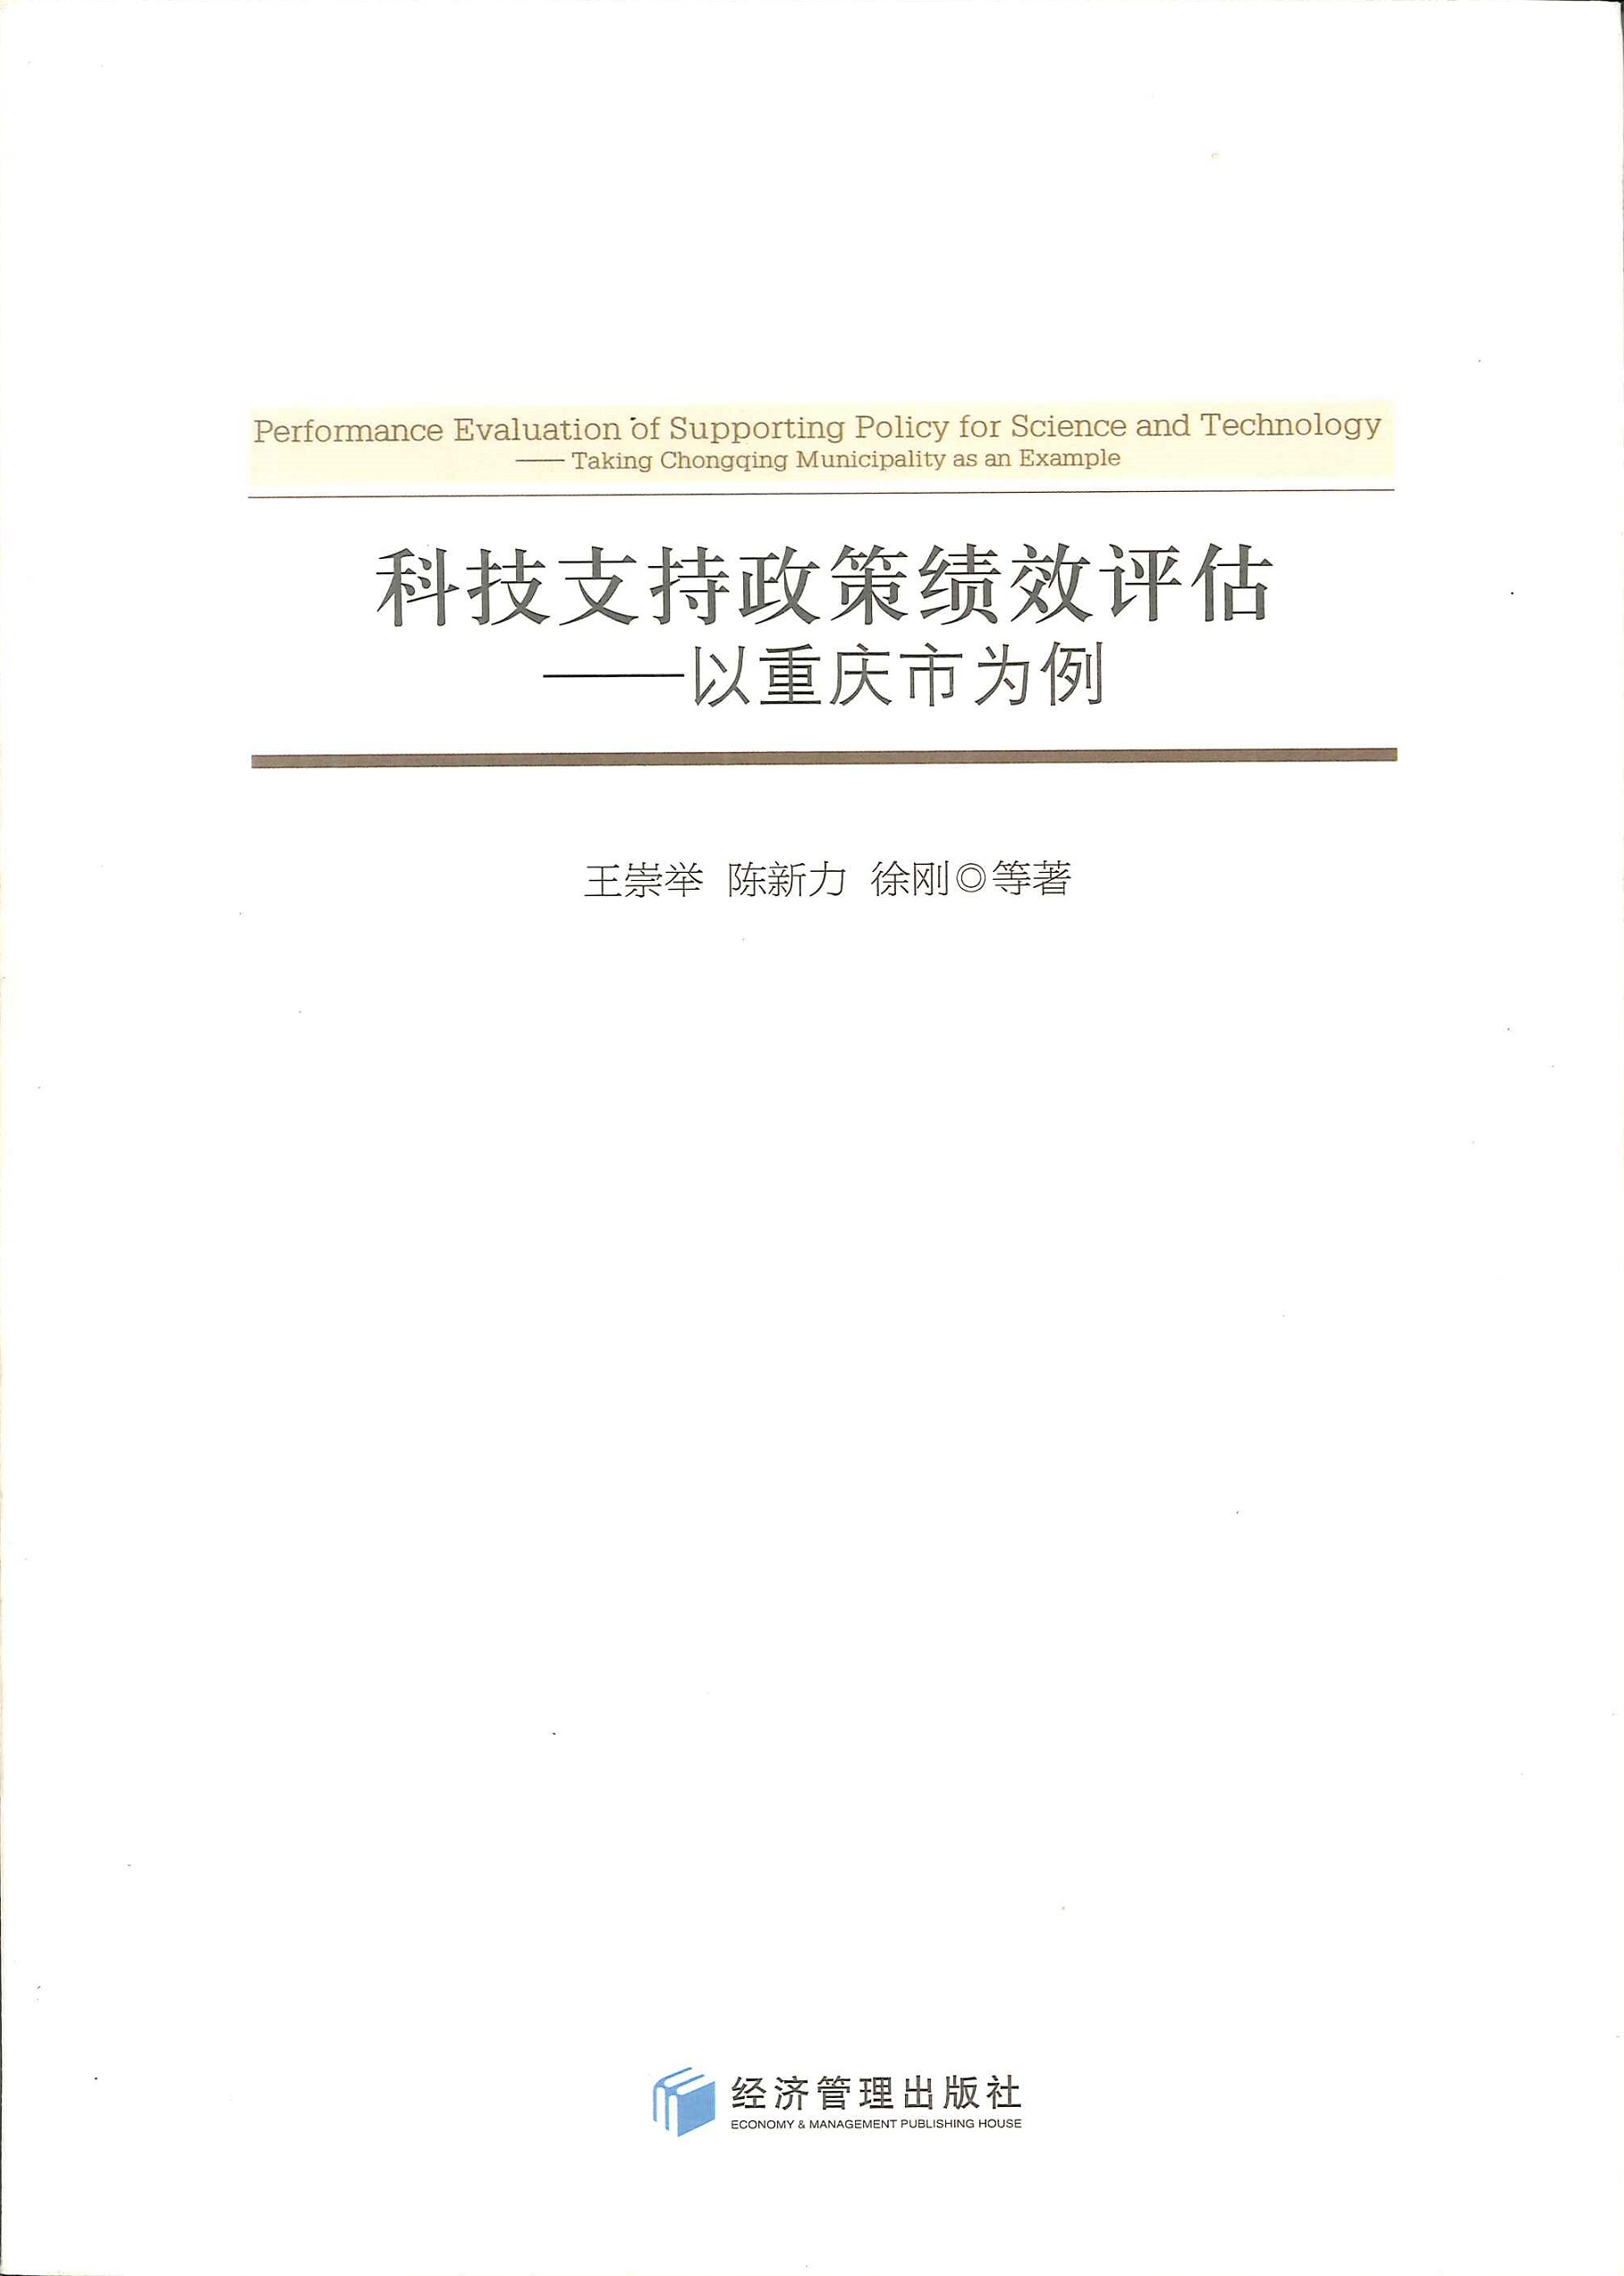 科技支持政策绩效评估:以重庆市为例=Performance evaluation of supporting policy for science and technology: taking Chongqing municipality as an example